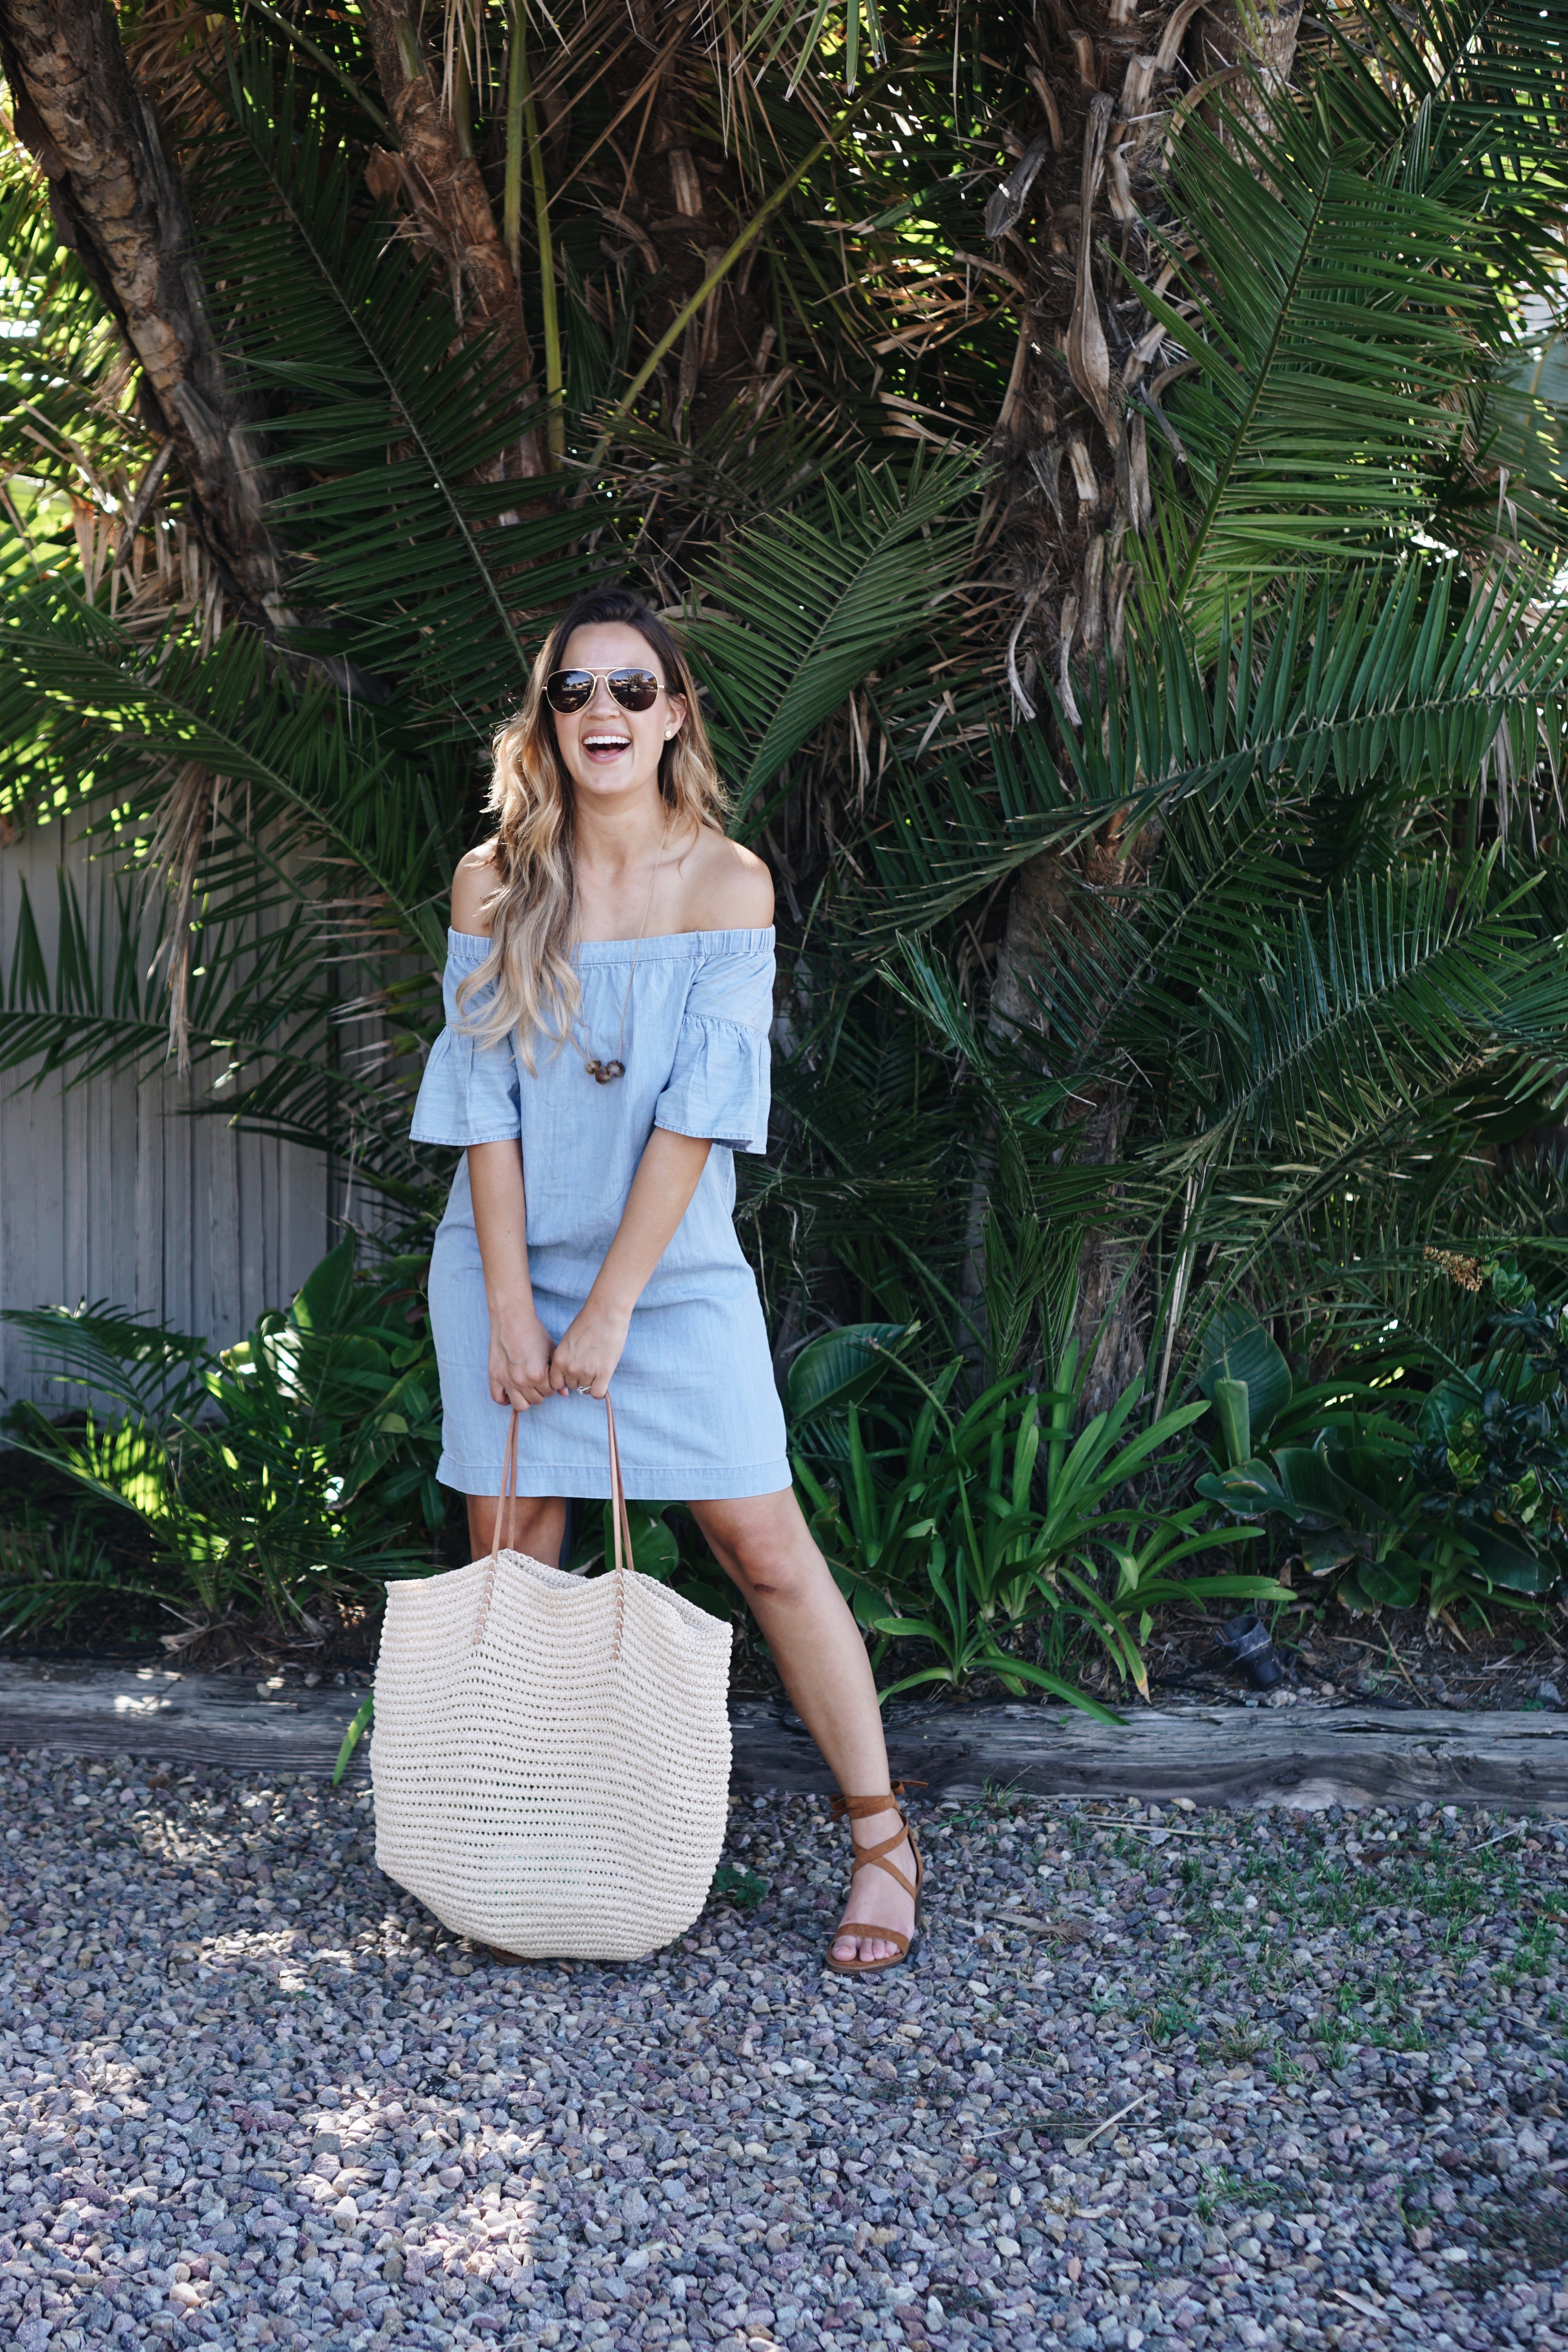 21f4b4856aa3 Today I m showing you how I styled it for summer weather with my newest off-shoulder  dress sent over from Madewell—the denim Azalea dress.